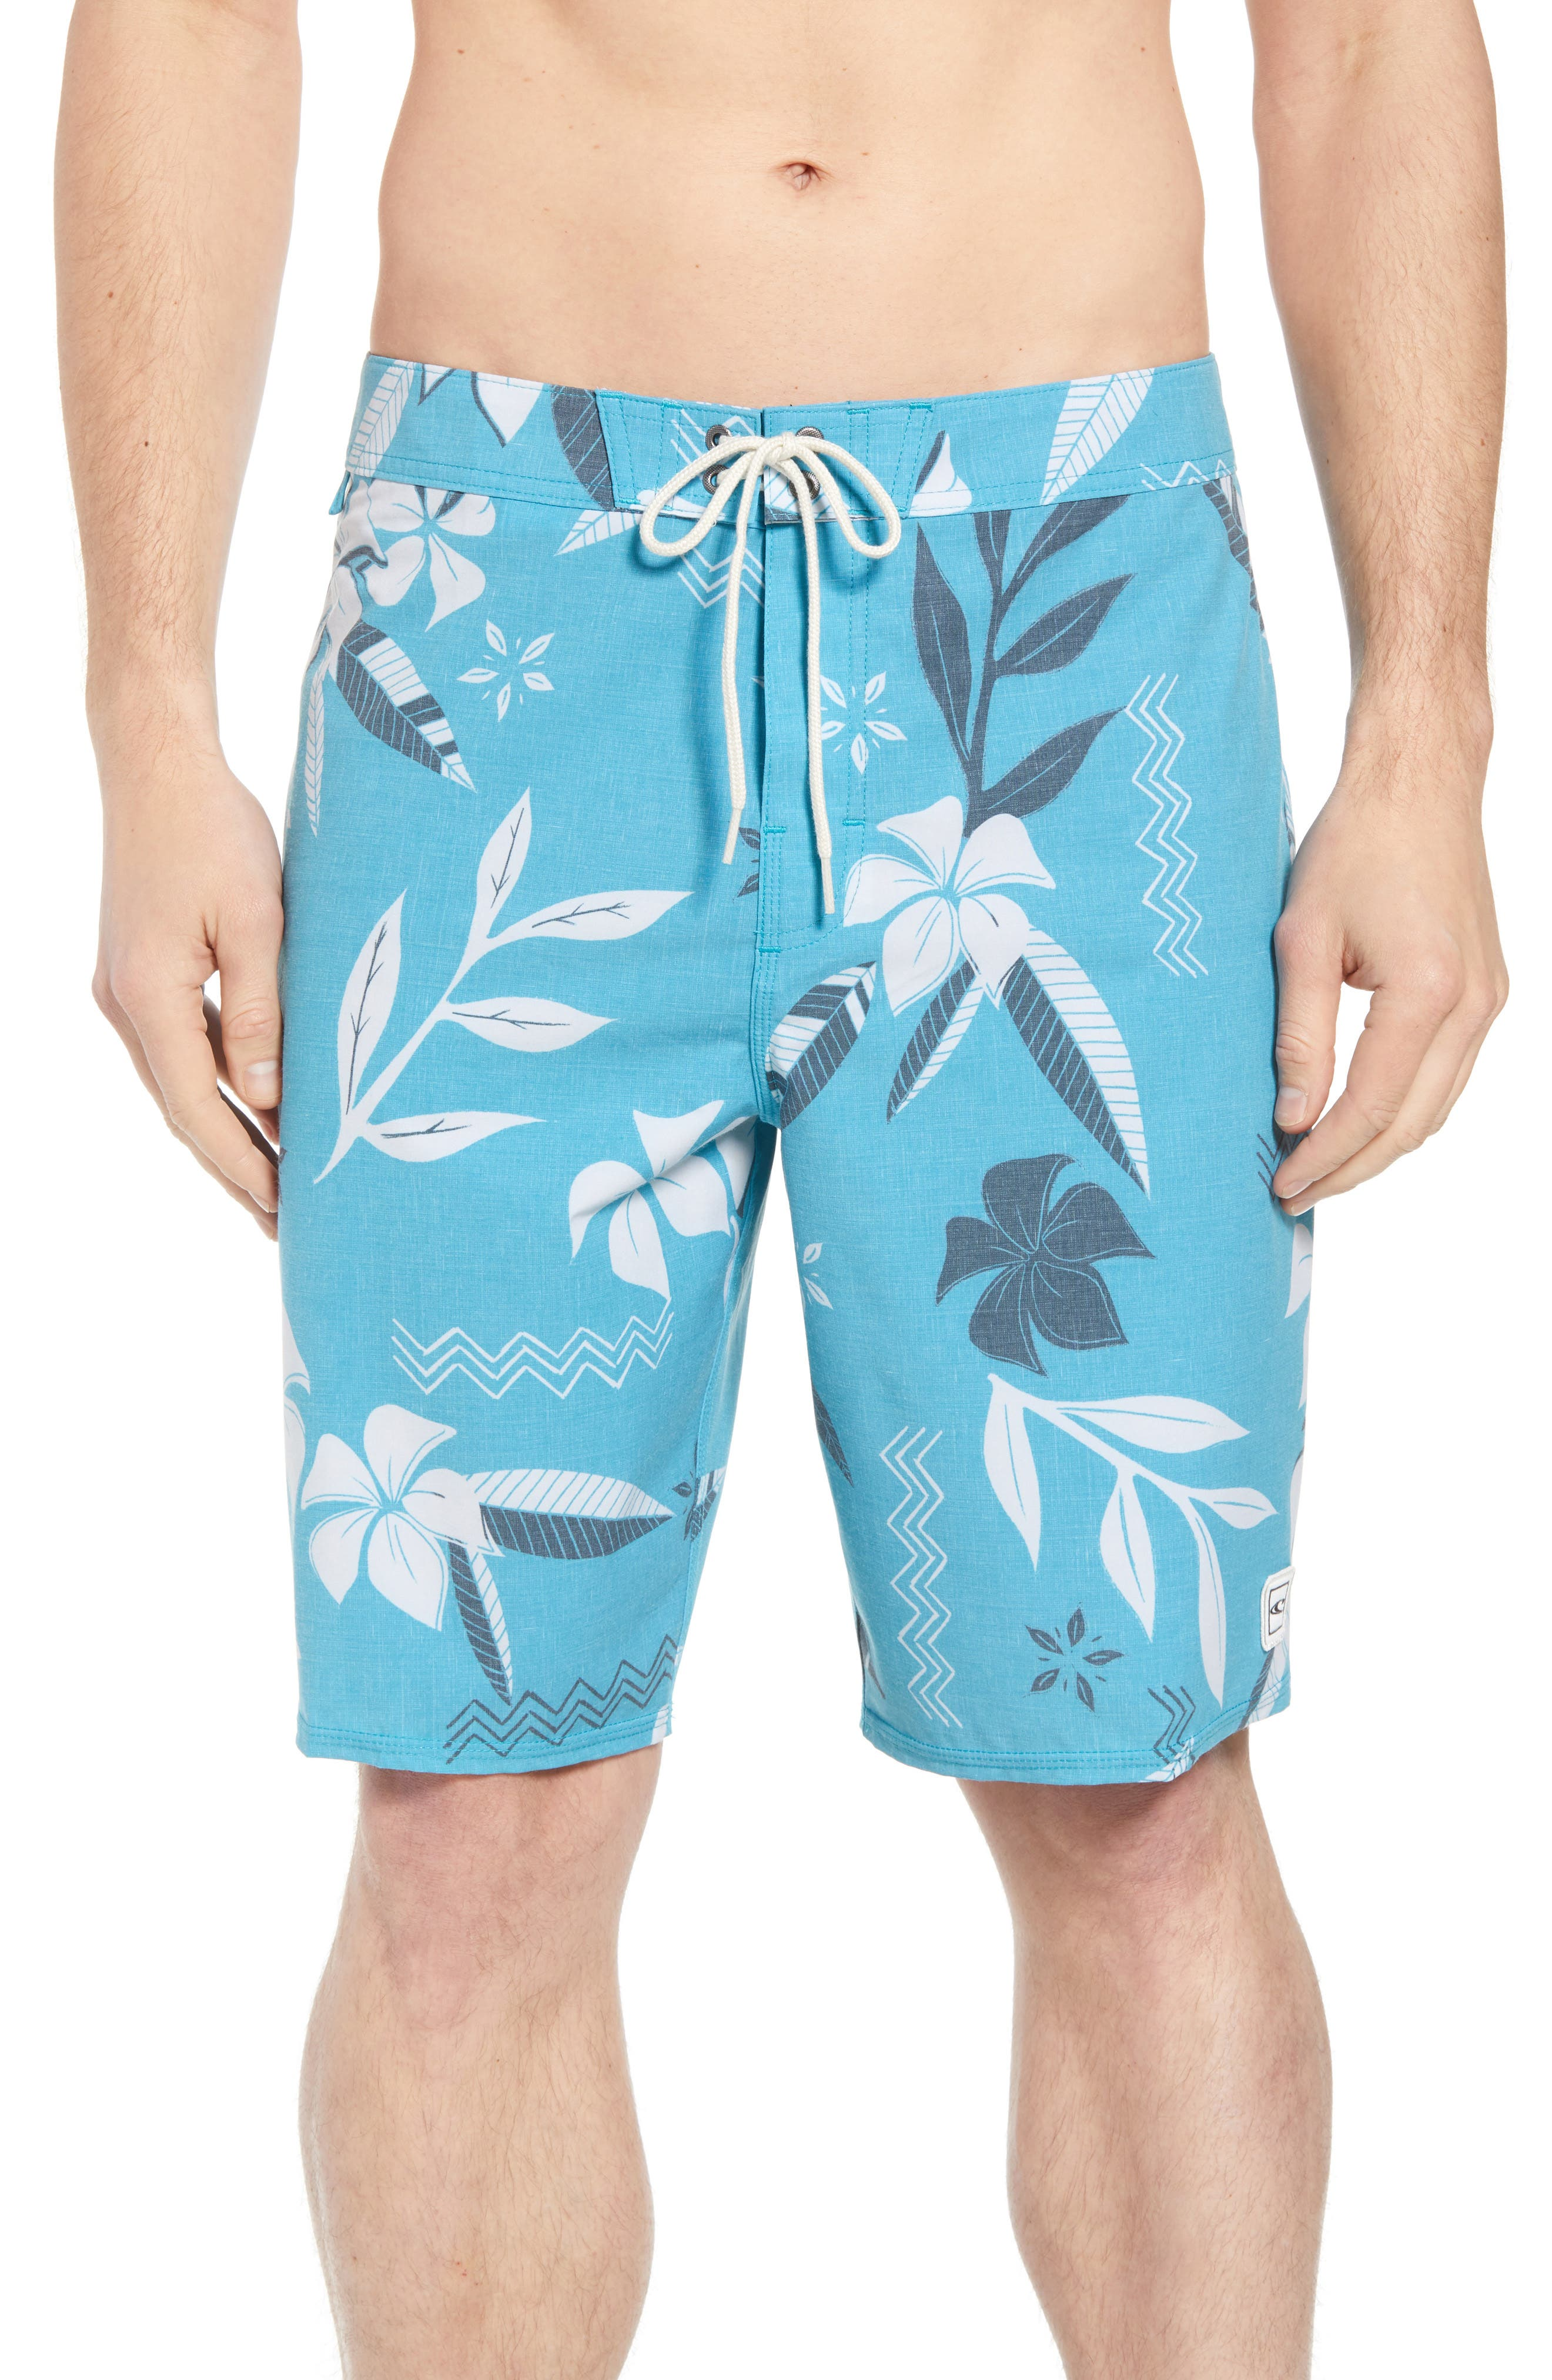 Maui Board Shorts,                             Main thumbnail 2, color,